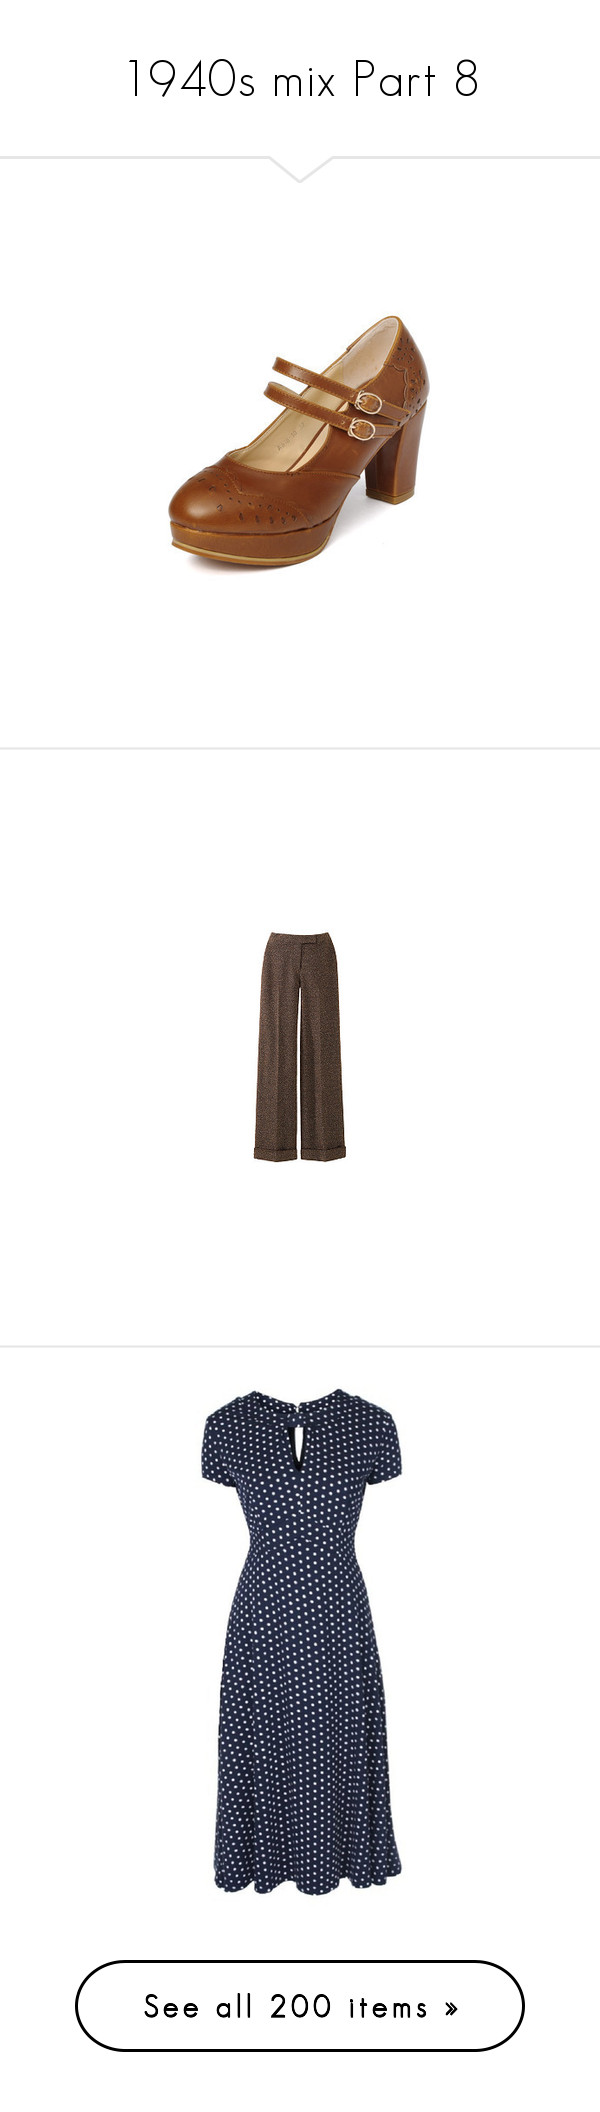 """""""1940s mix Part 8"""" by leanne-mcclean ❤ liked on Polyvore featuring shoes, heels, footware, brown mary jane shoes, brown shoes, brown platform shoes, chunky heel shoes, wide heel shoes, pants and bottoms"""